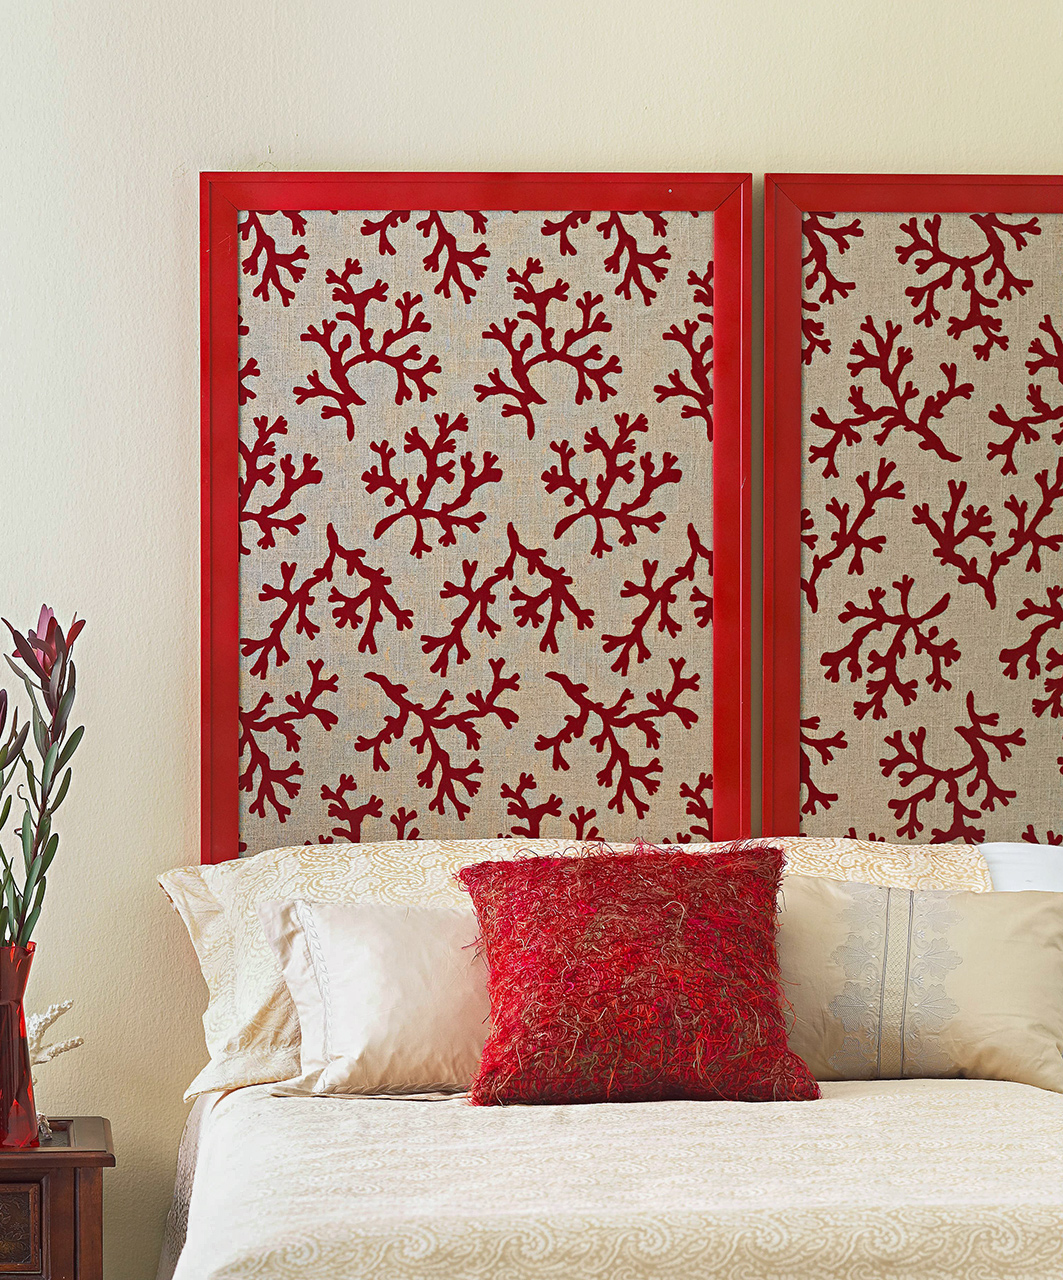 DIY Framed Fabric Headboard